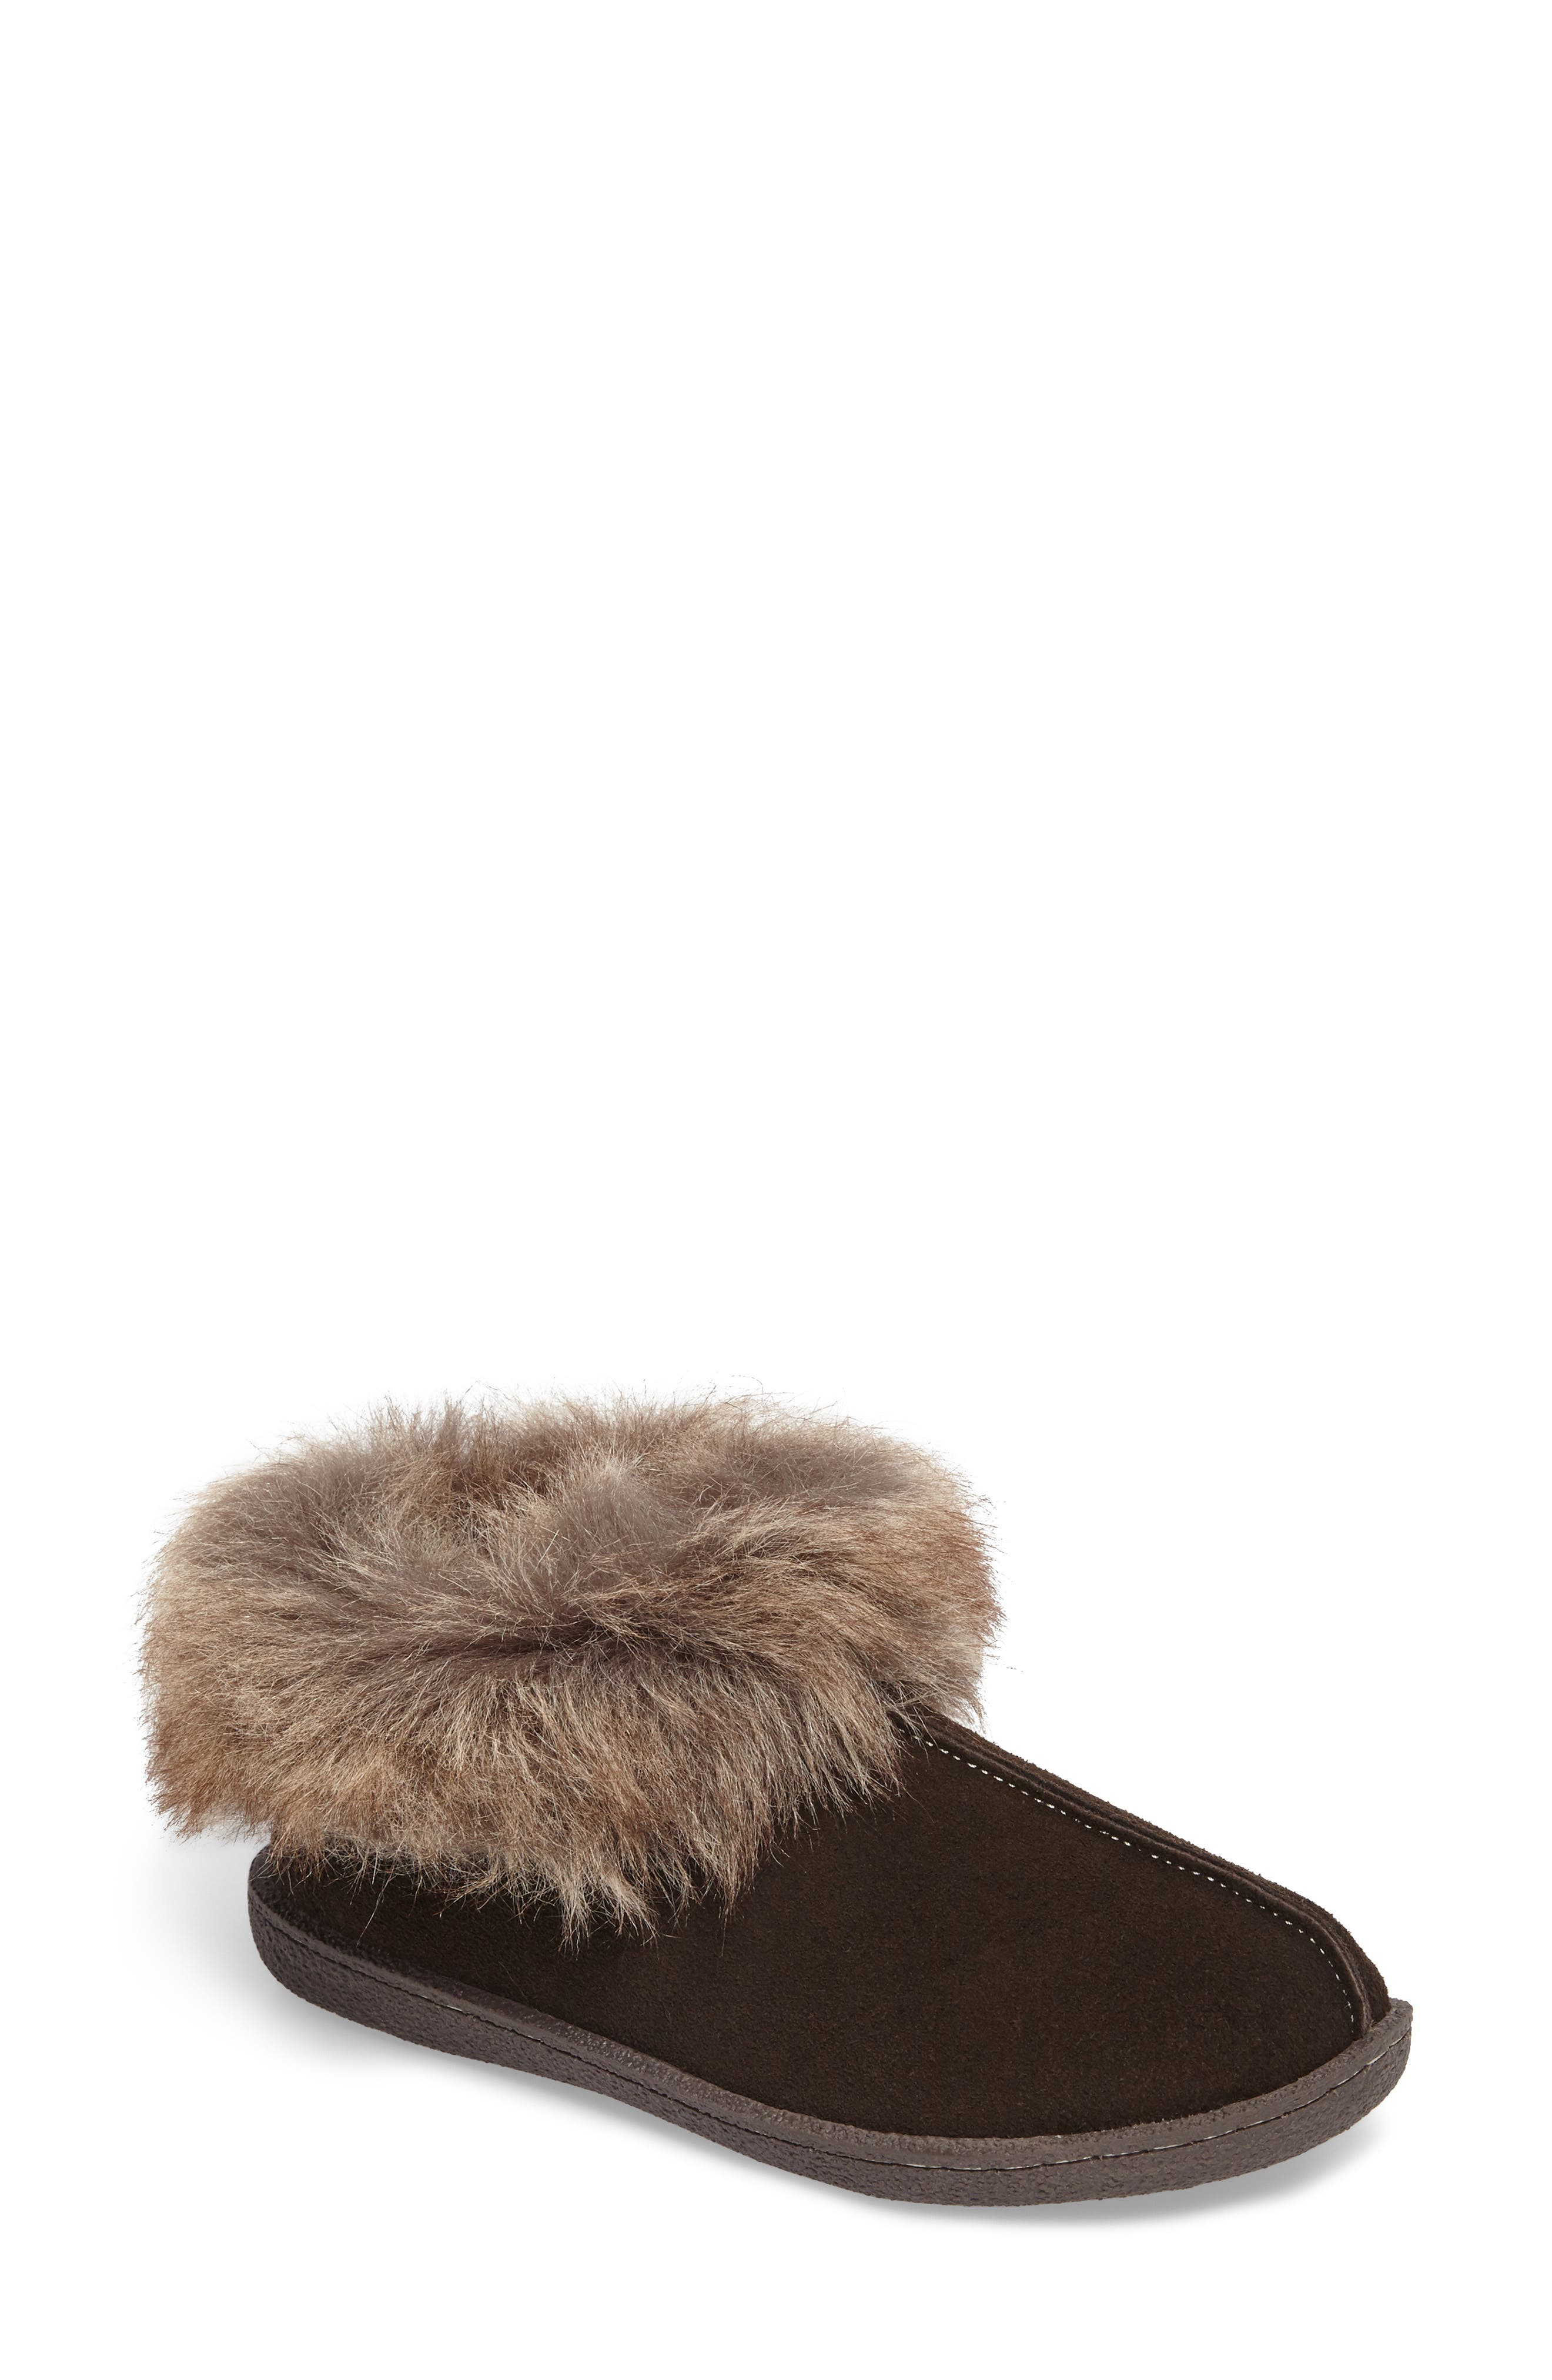 Autumn Ridge II Faux Fur Slipper Bootie,                         Main,                         color,